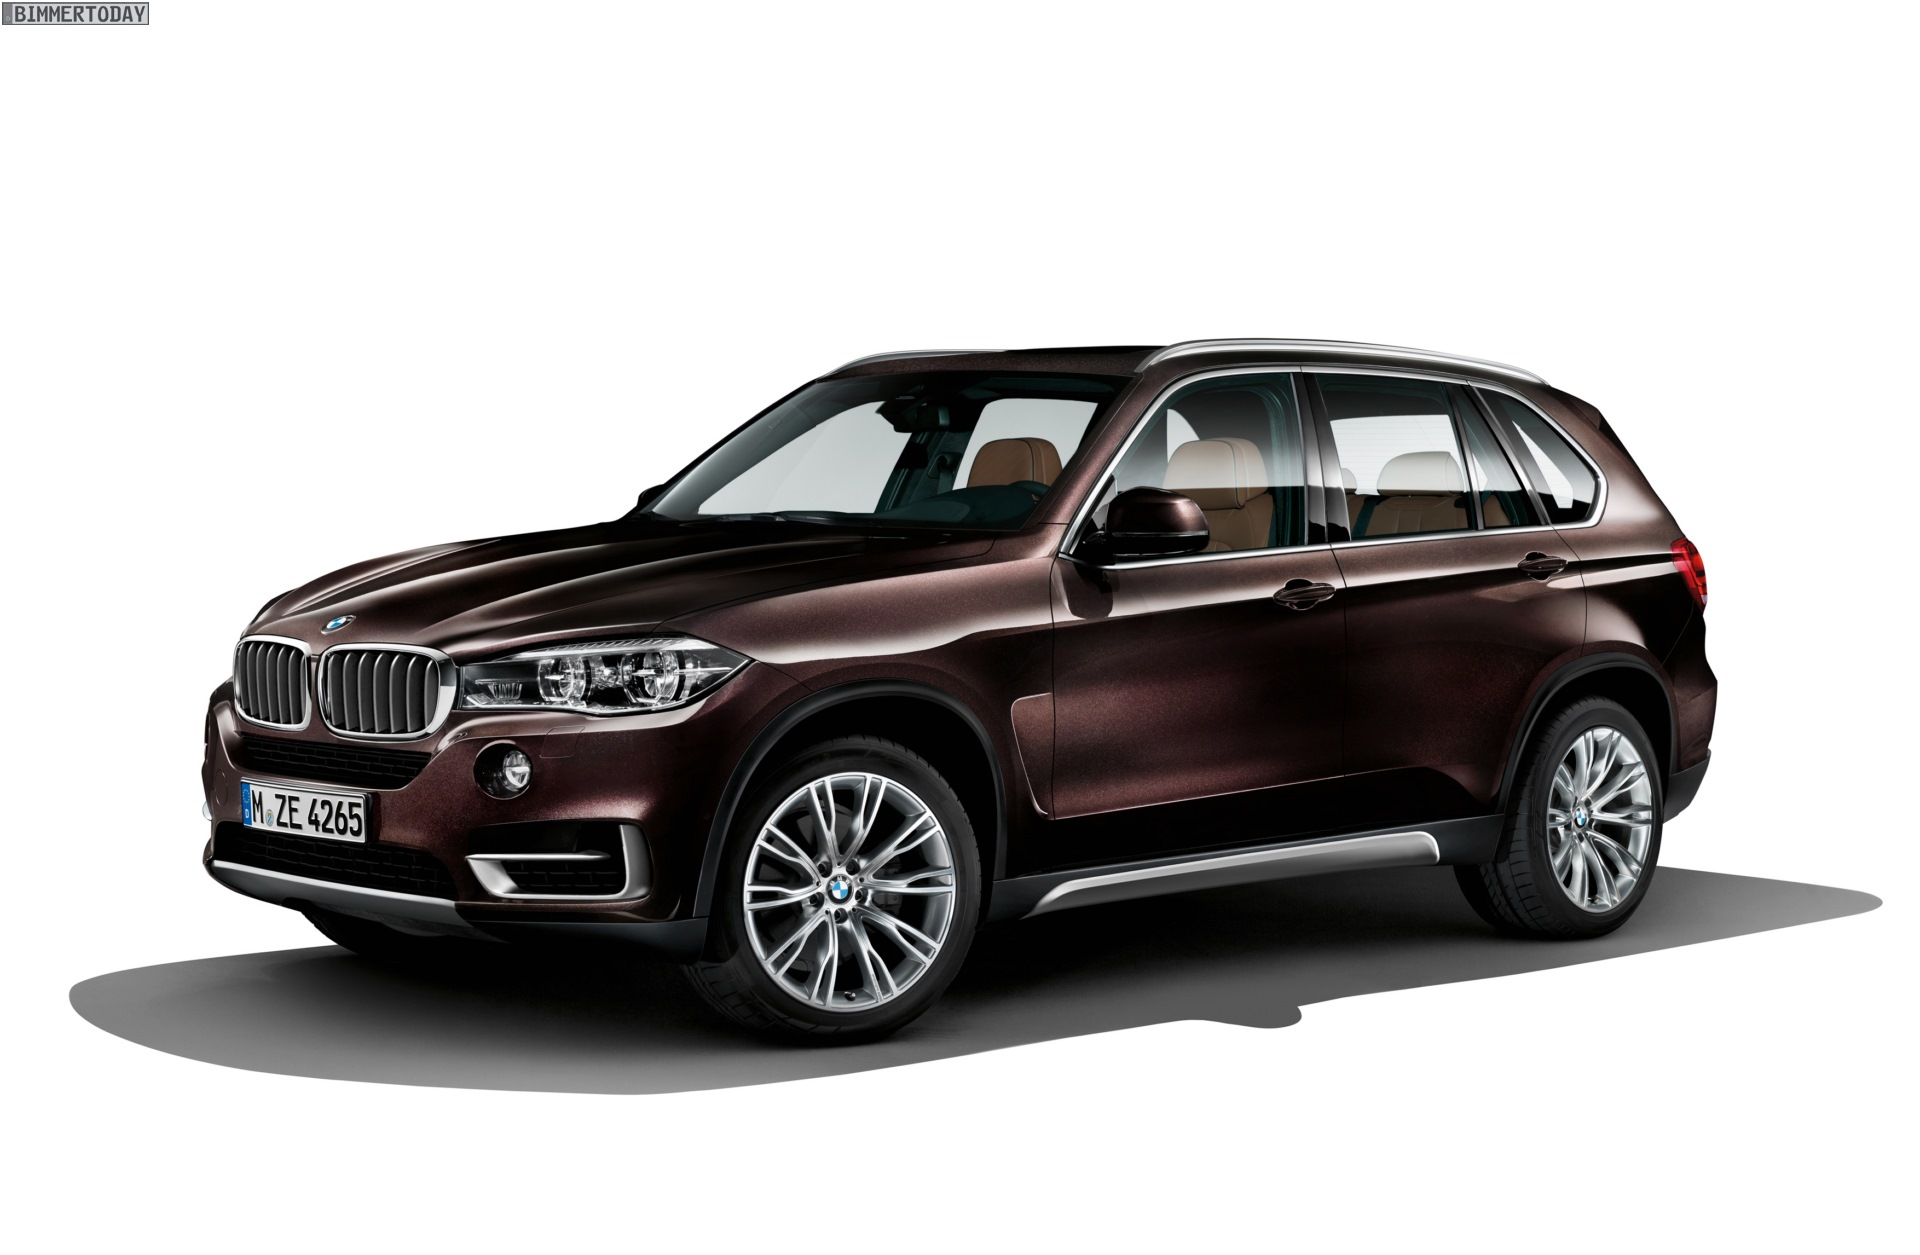 2014 Bmw X5 In Individual Pyrite Brown Metallic